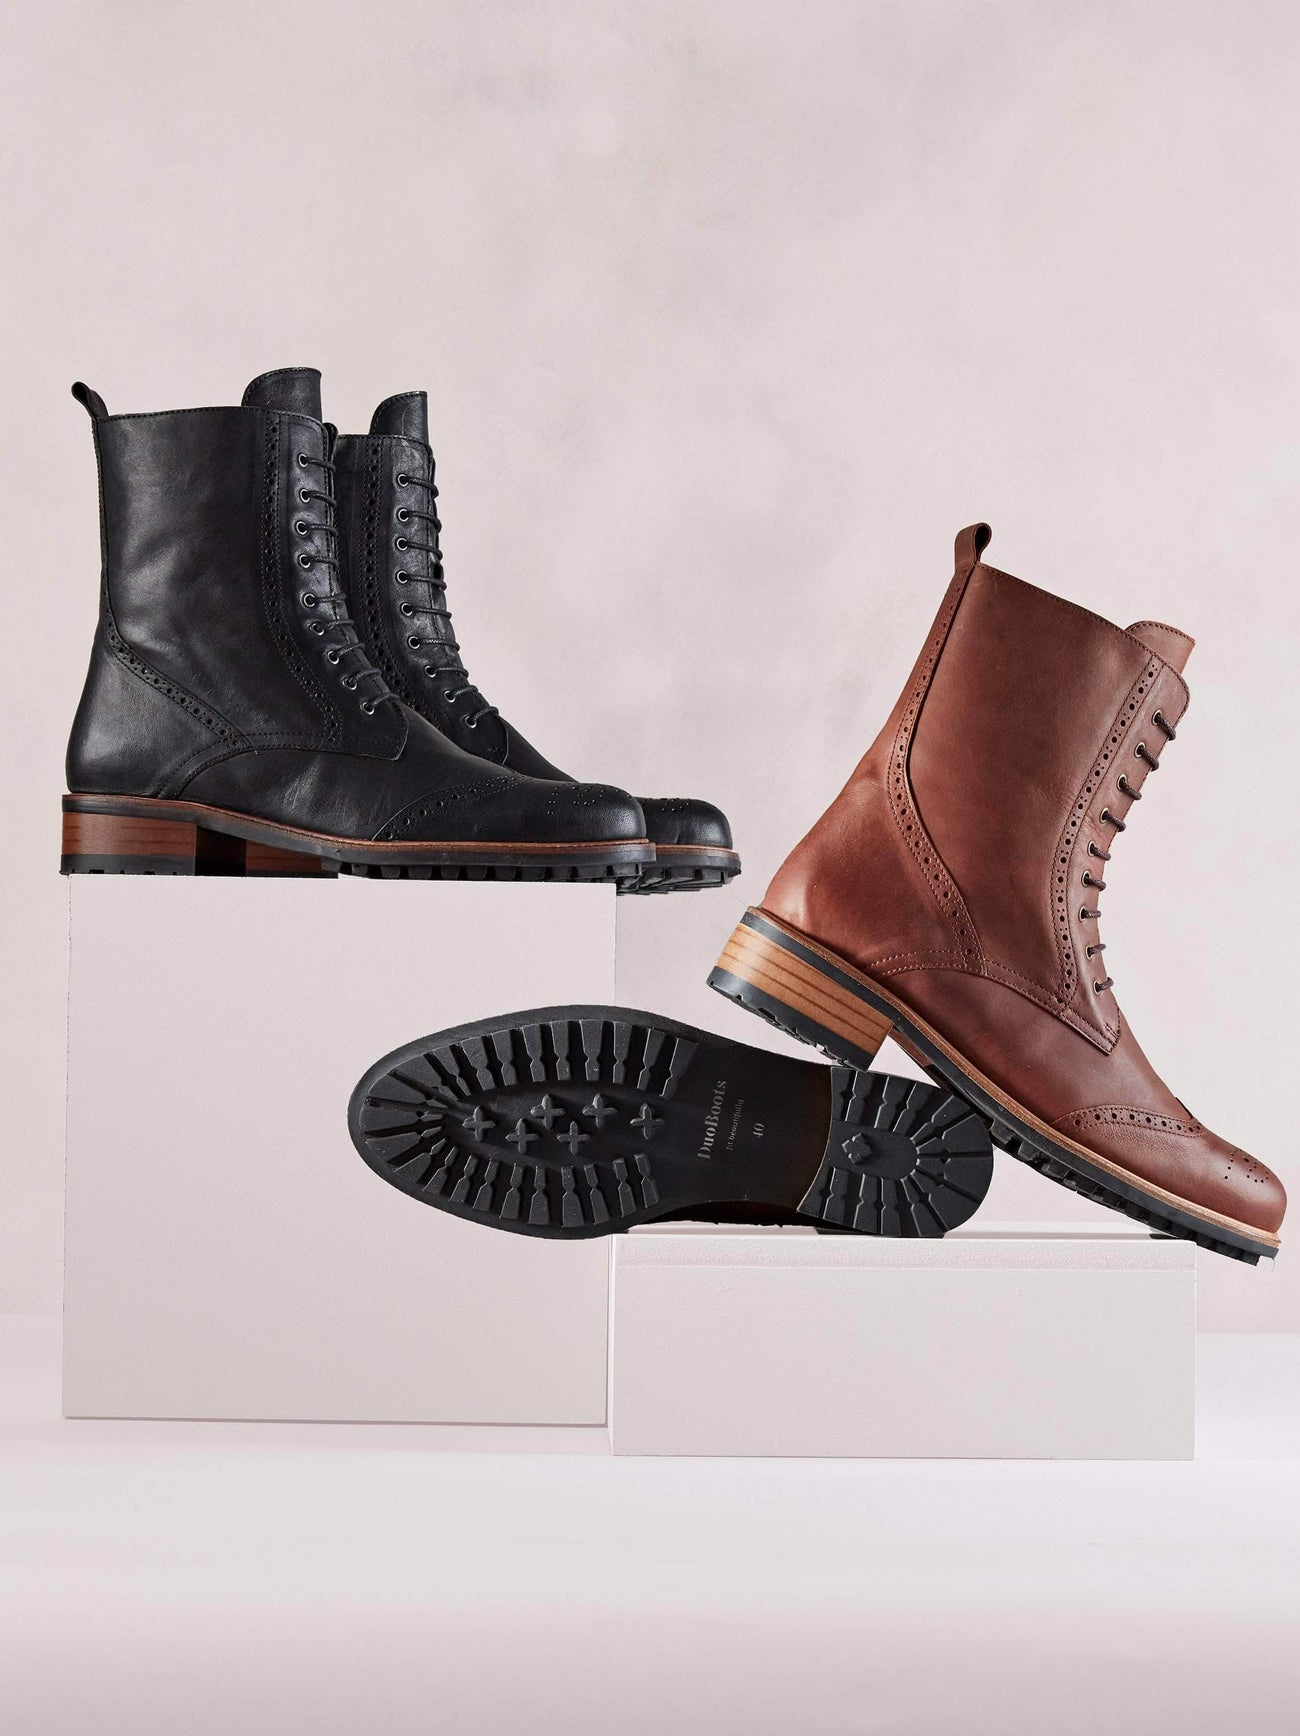 Chestnut leather ankle boot with a leather trim around the practical rubber tread sole.